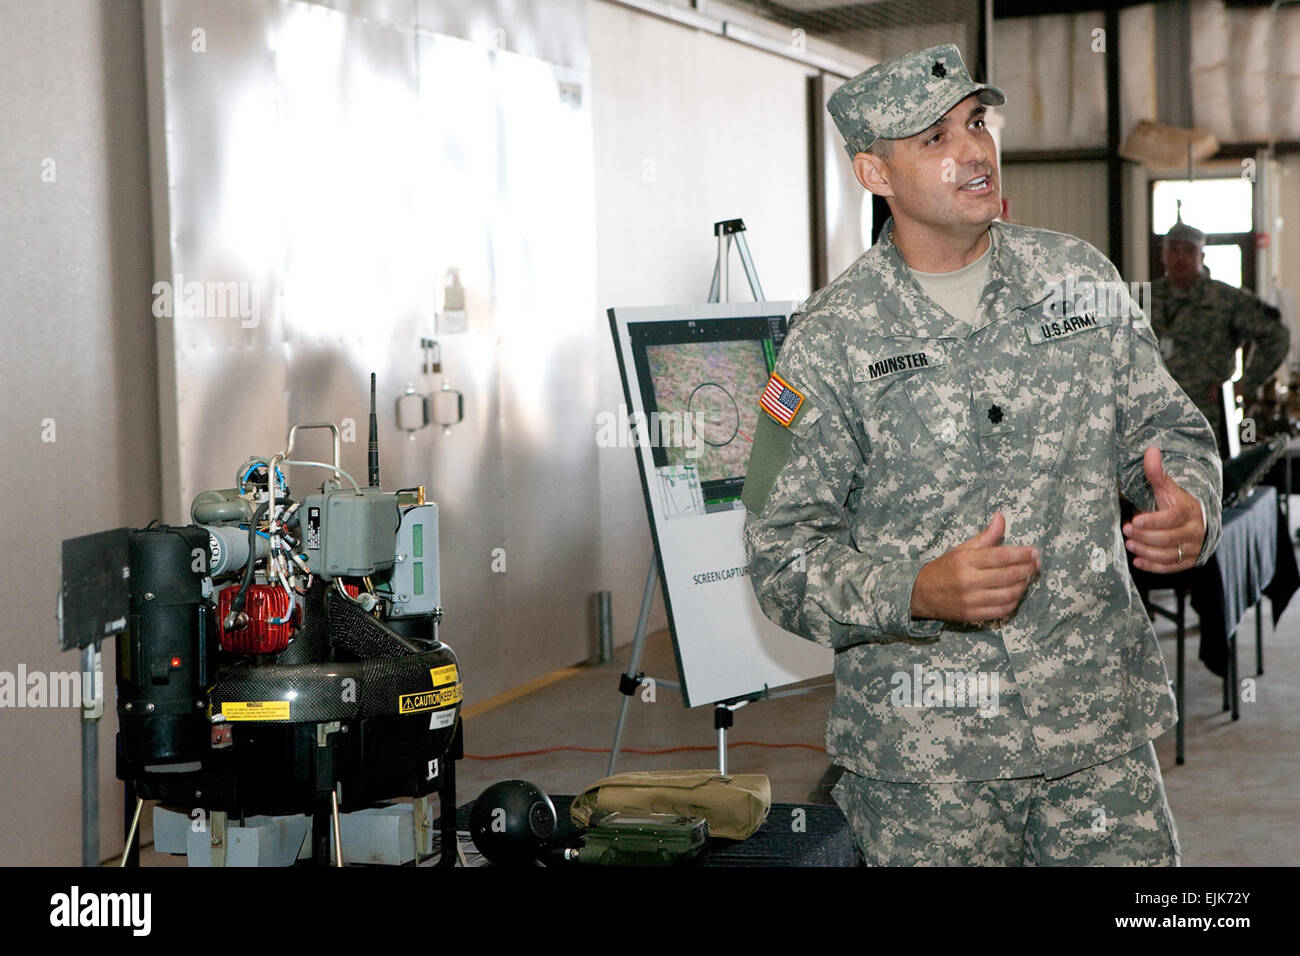 LTC Matt Munster fields questions about the Class I Unmanned Aerial Vehicle UAV at Limited User Test Visitor Day - Stock Image